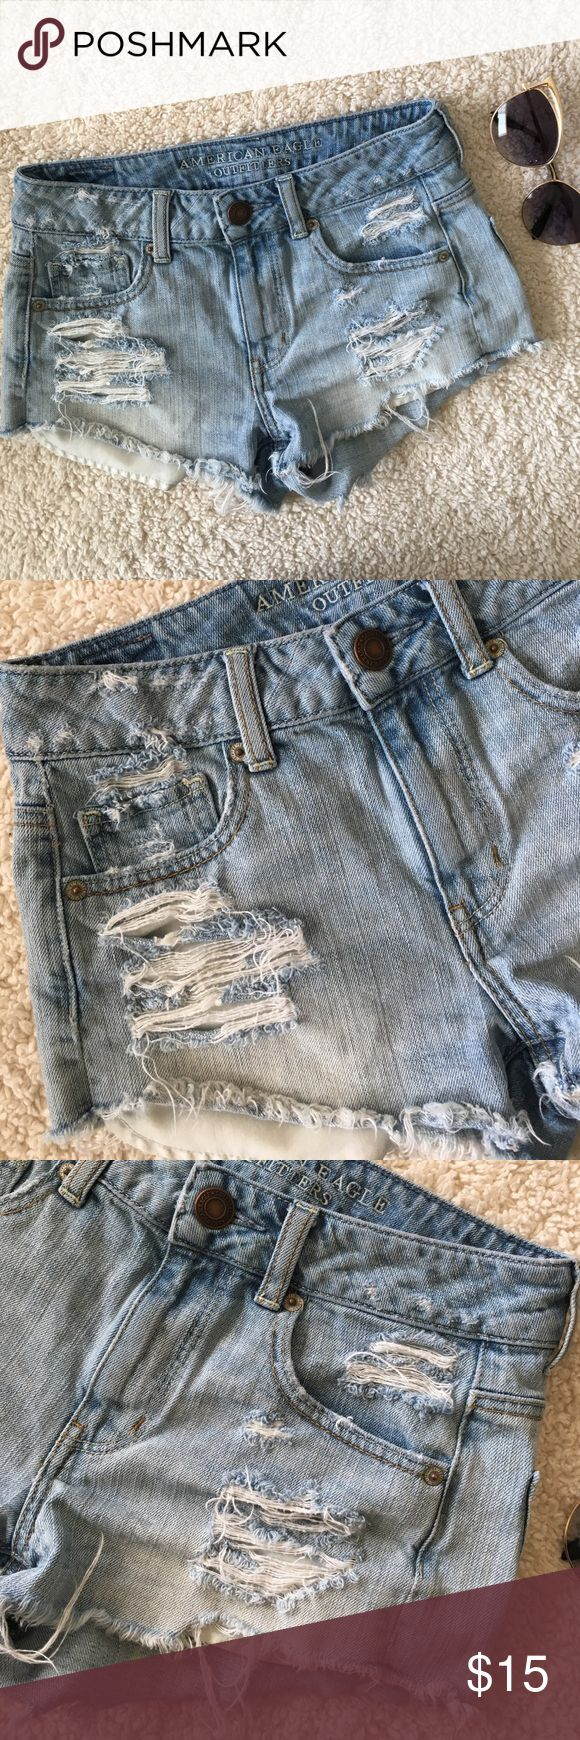 American Eagle Denim Shorts American Eagle Denim Shorts Size 2 American Eagle Outfitters Shorts Jean Shorts